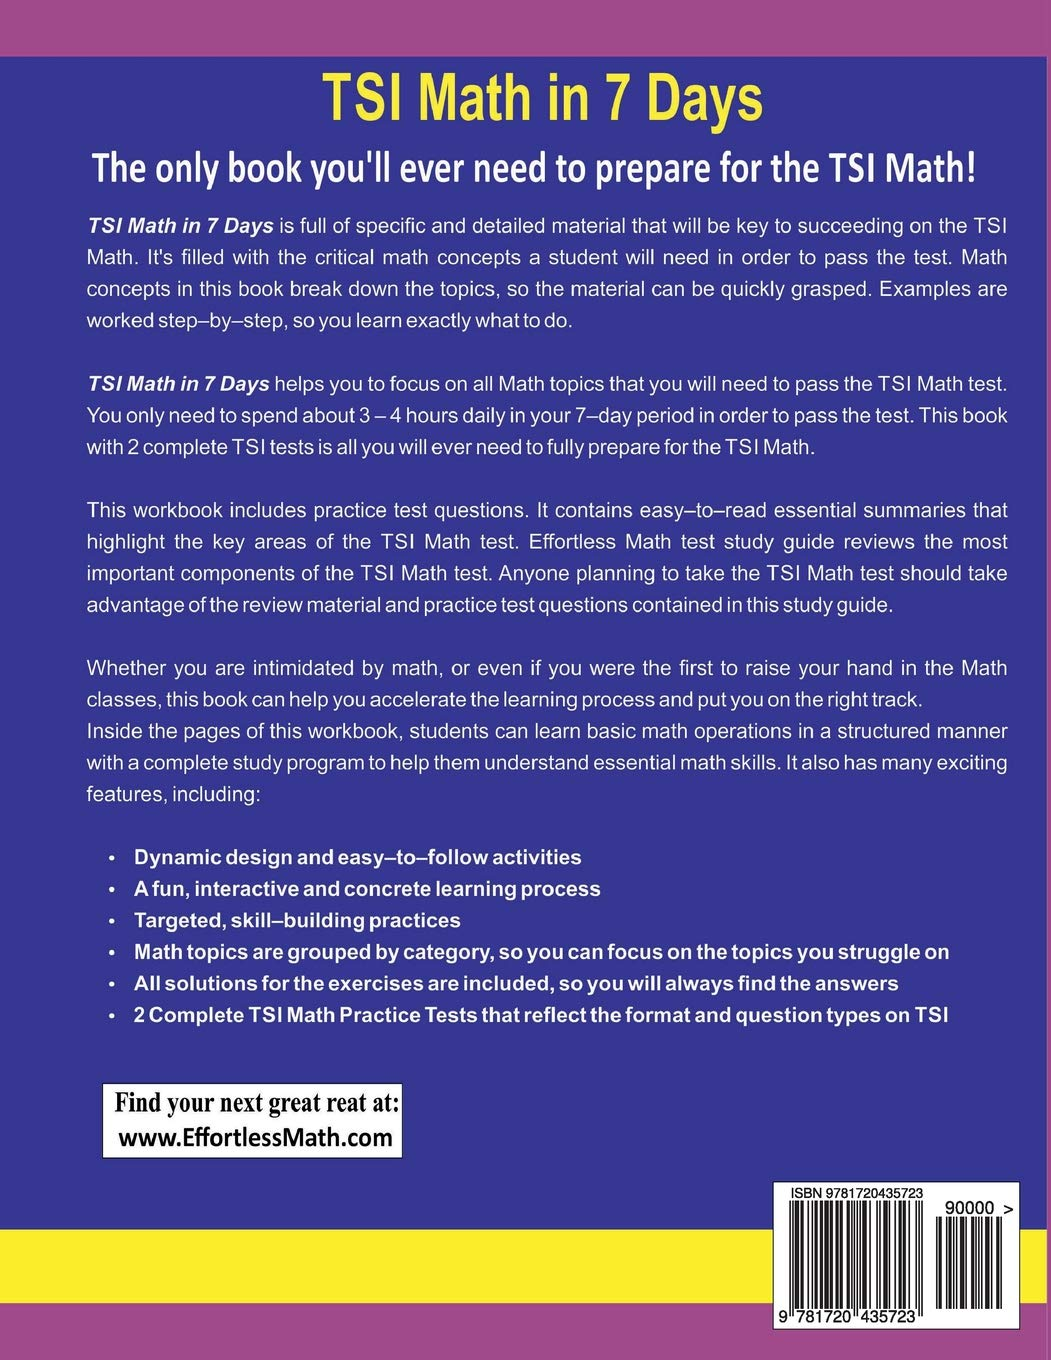 TSI Math in 7 Days: Step-By-Step Guide to Preparing for the TSI Math Test  Quickly: Reza Nazari, Ava Ross: 9781720435723: Amazon.com: Books